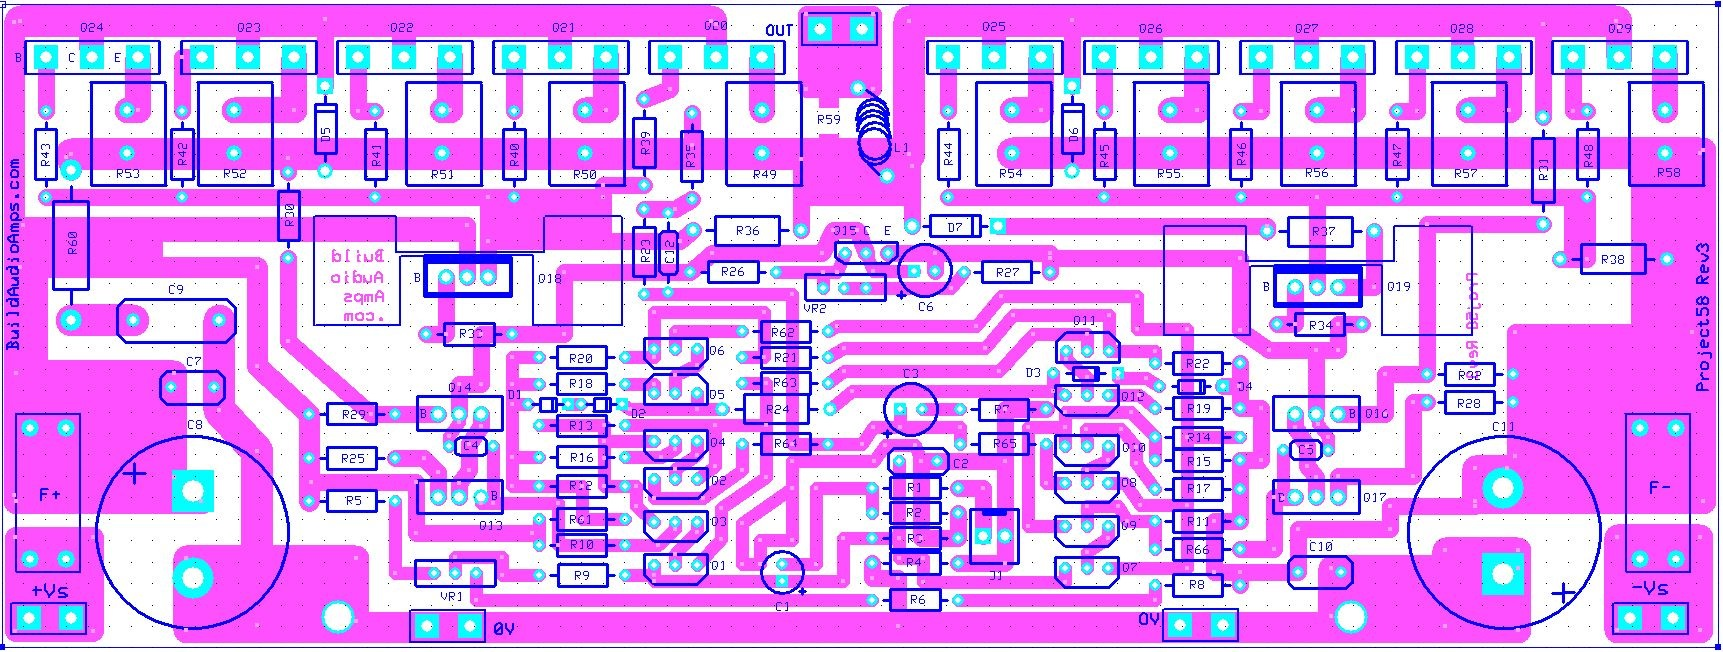 Project 58 Buildaudioamps Project 58 Buildaudioamps Power Amplifier Circuit Diagram With Pcb Layout And Policies...